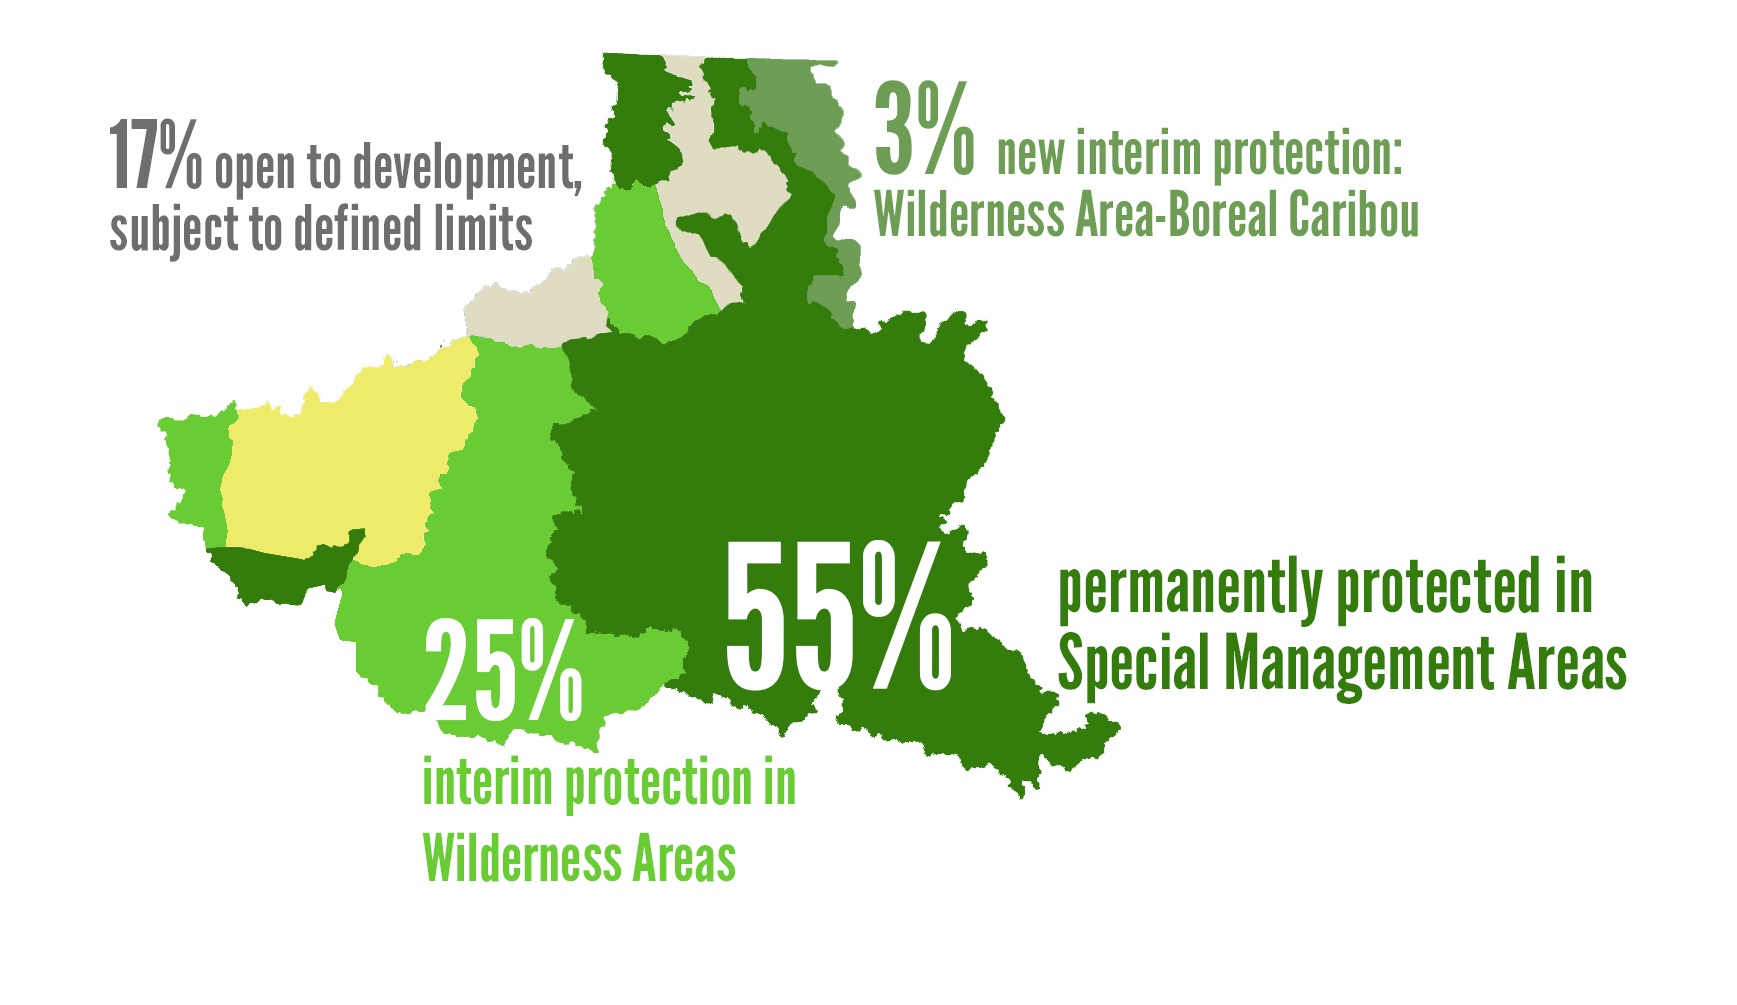 (Infographic via CPAWS)